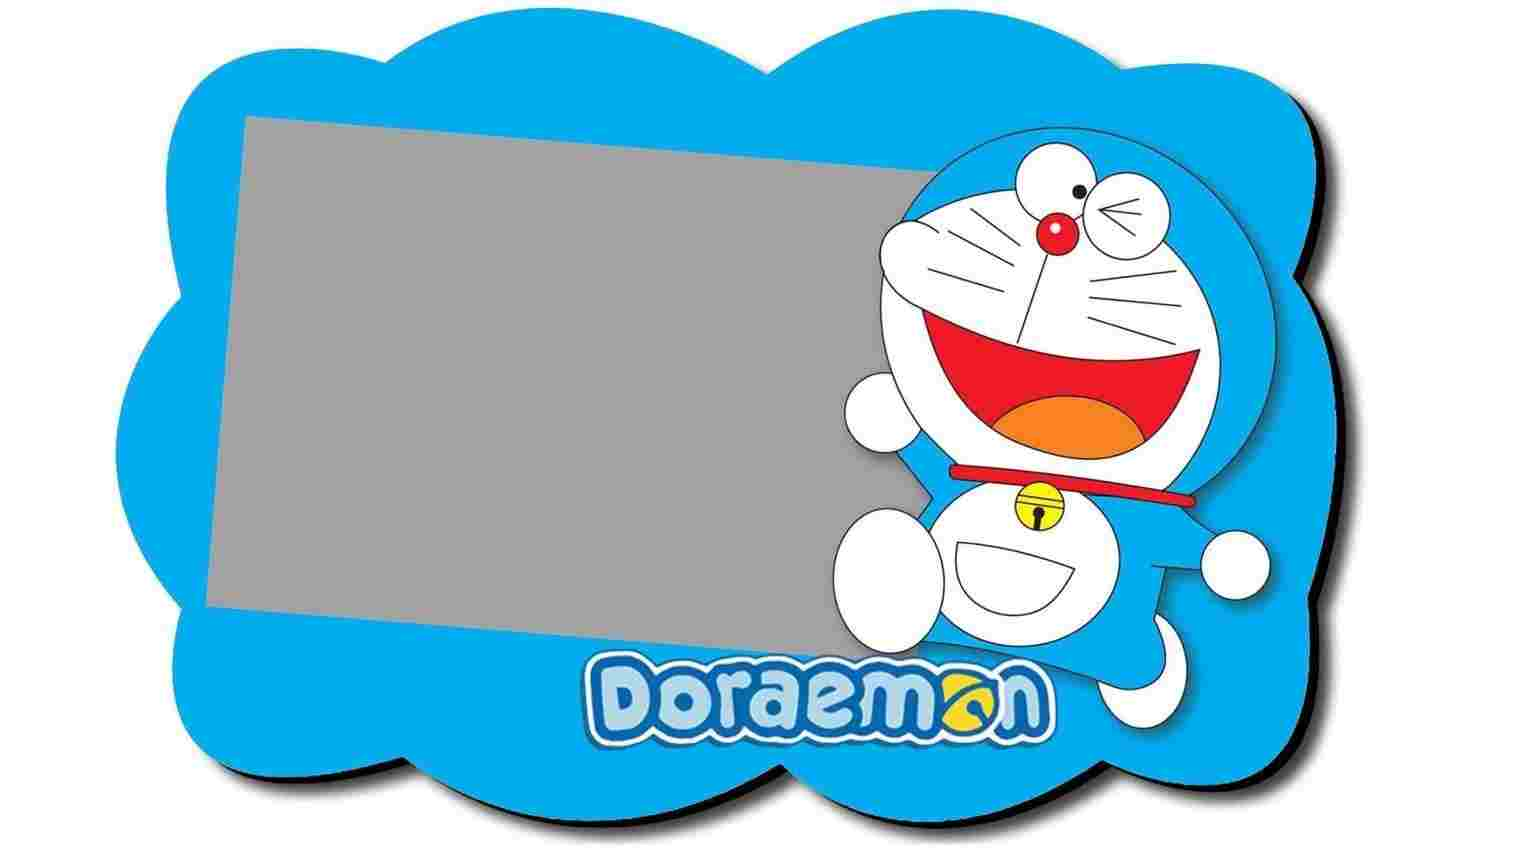 Doraemon Nobita Nobi Animation Cartoon pirate ship PNG clipart